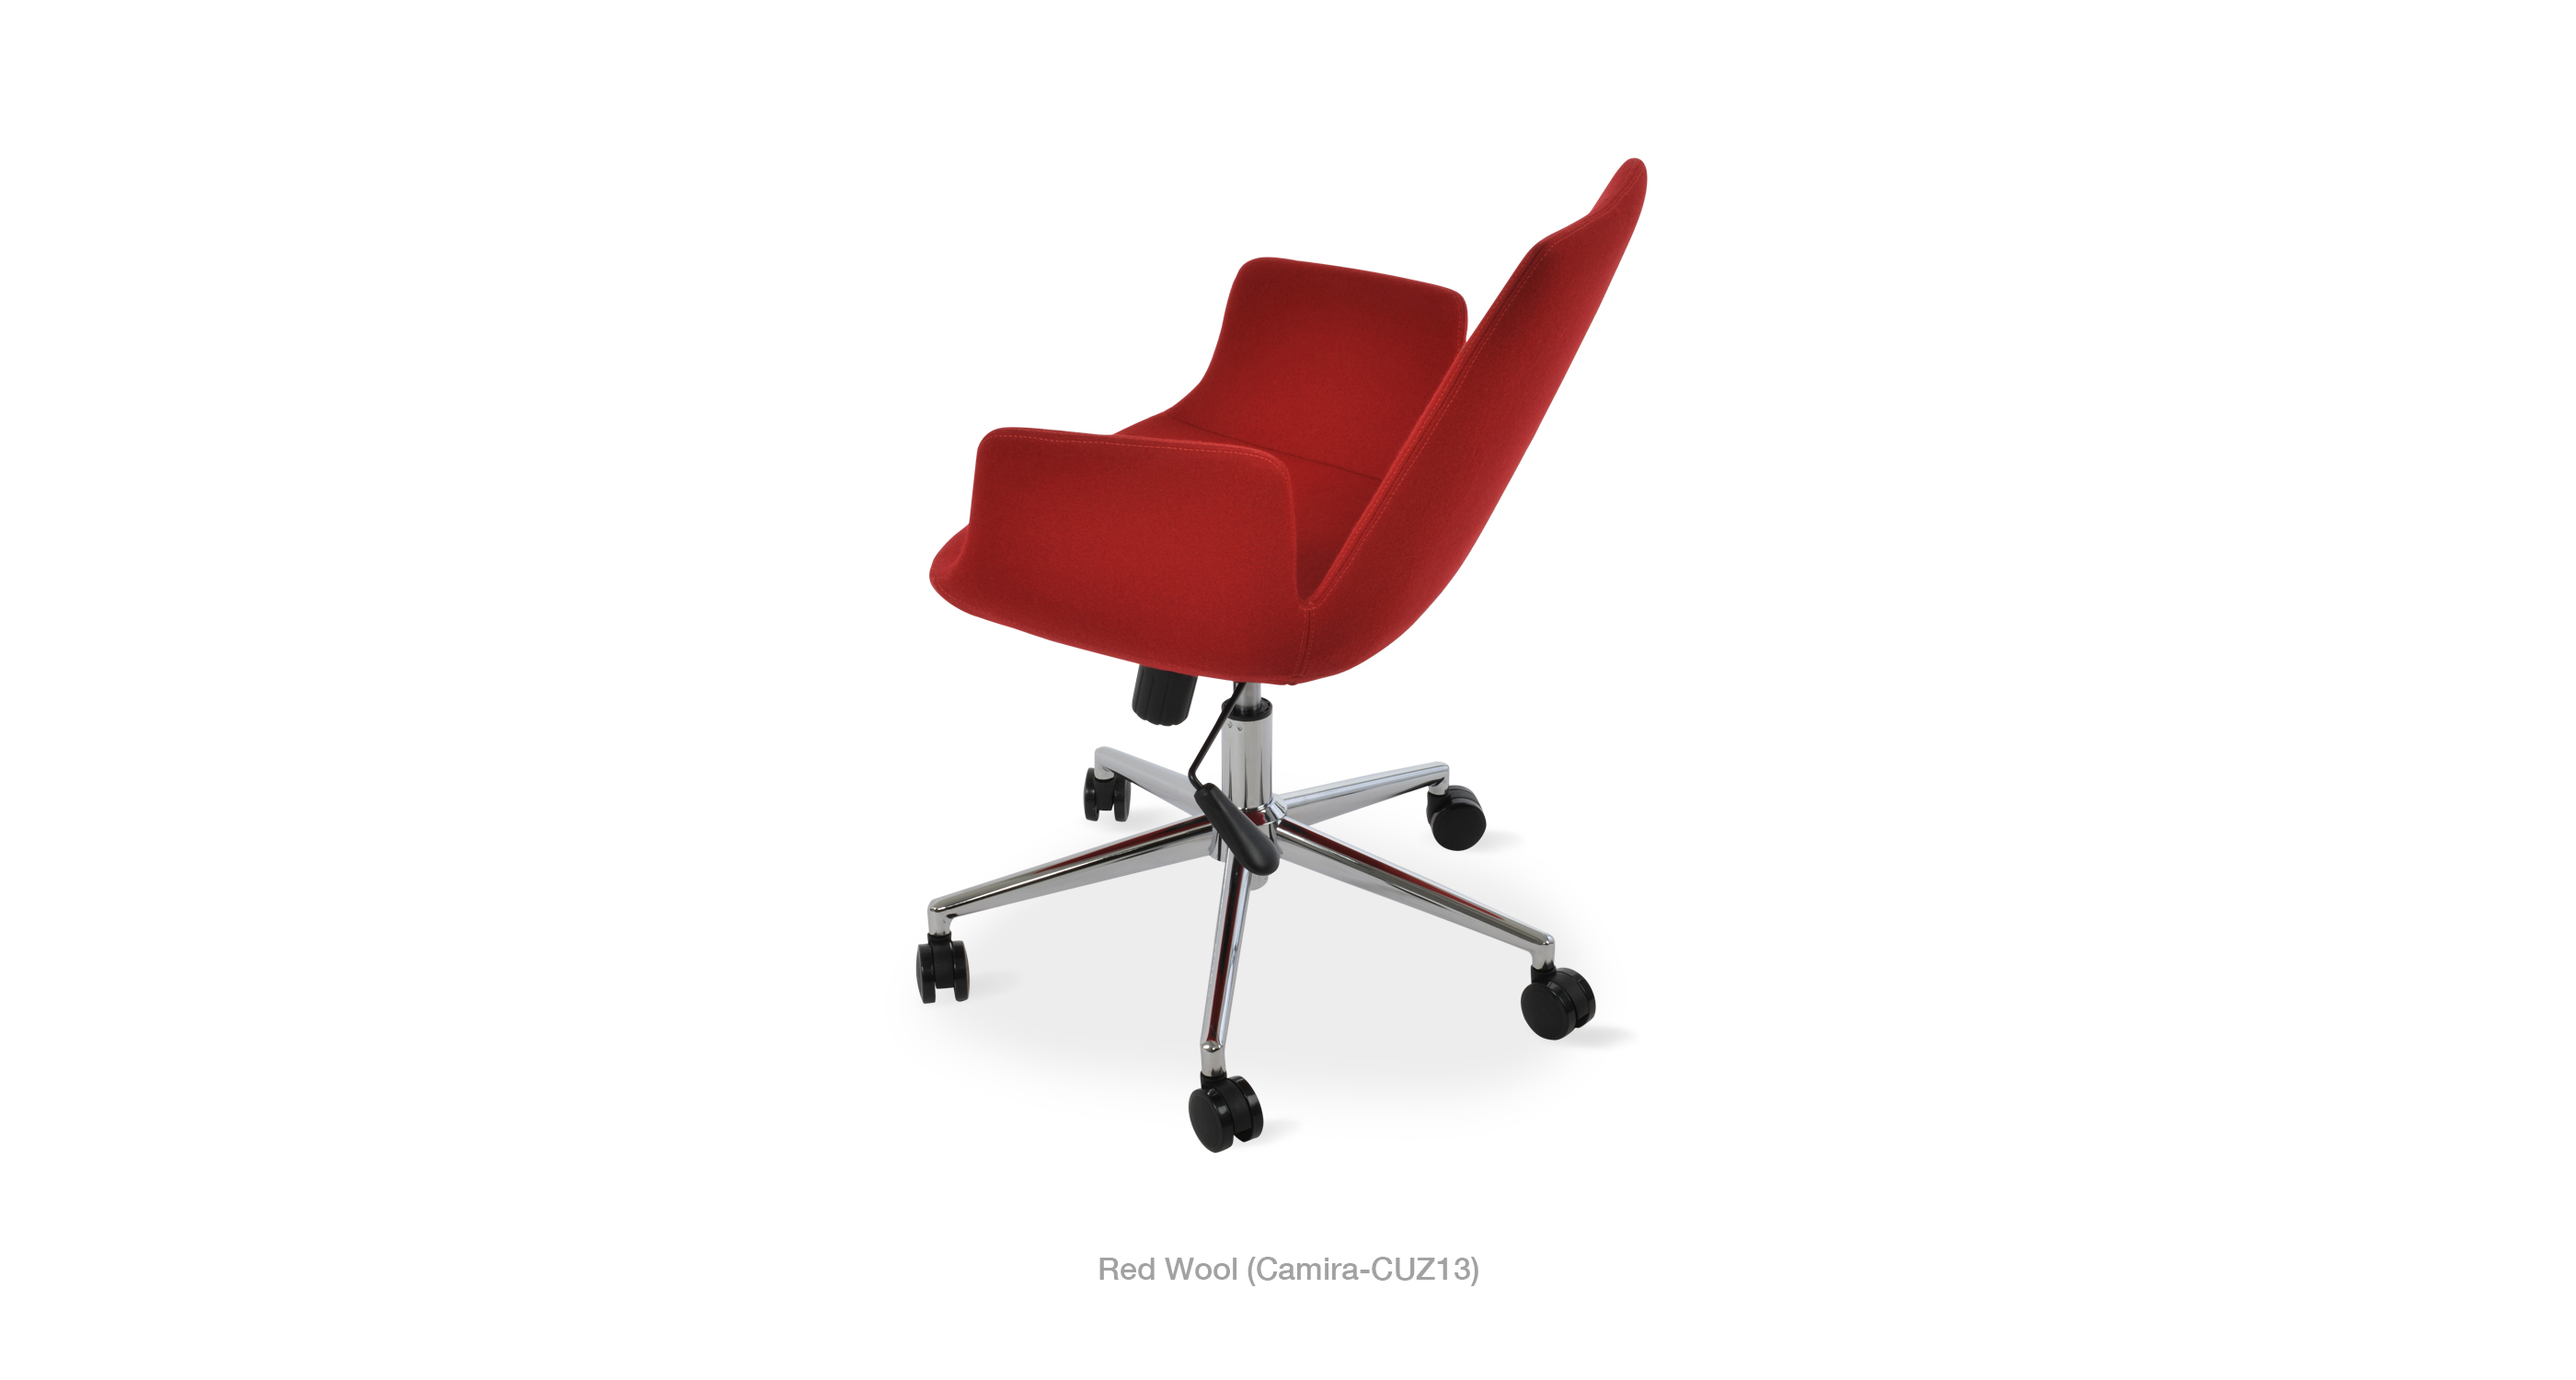 2020 03 05 Eiffel Arm Office Red Wool